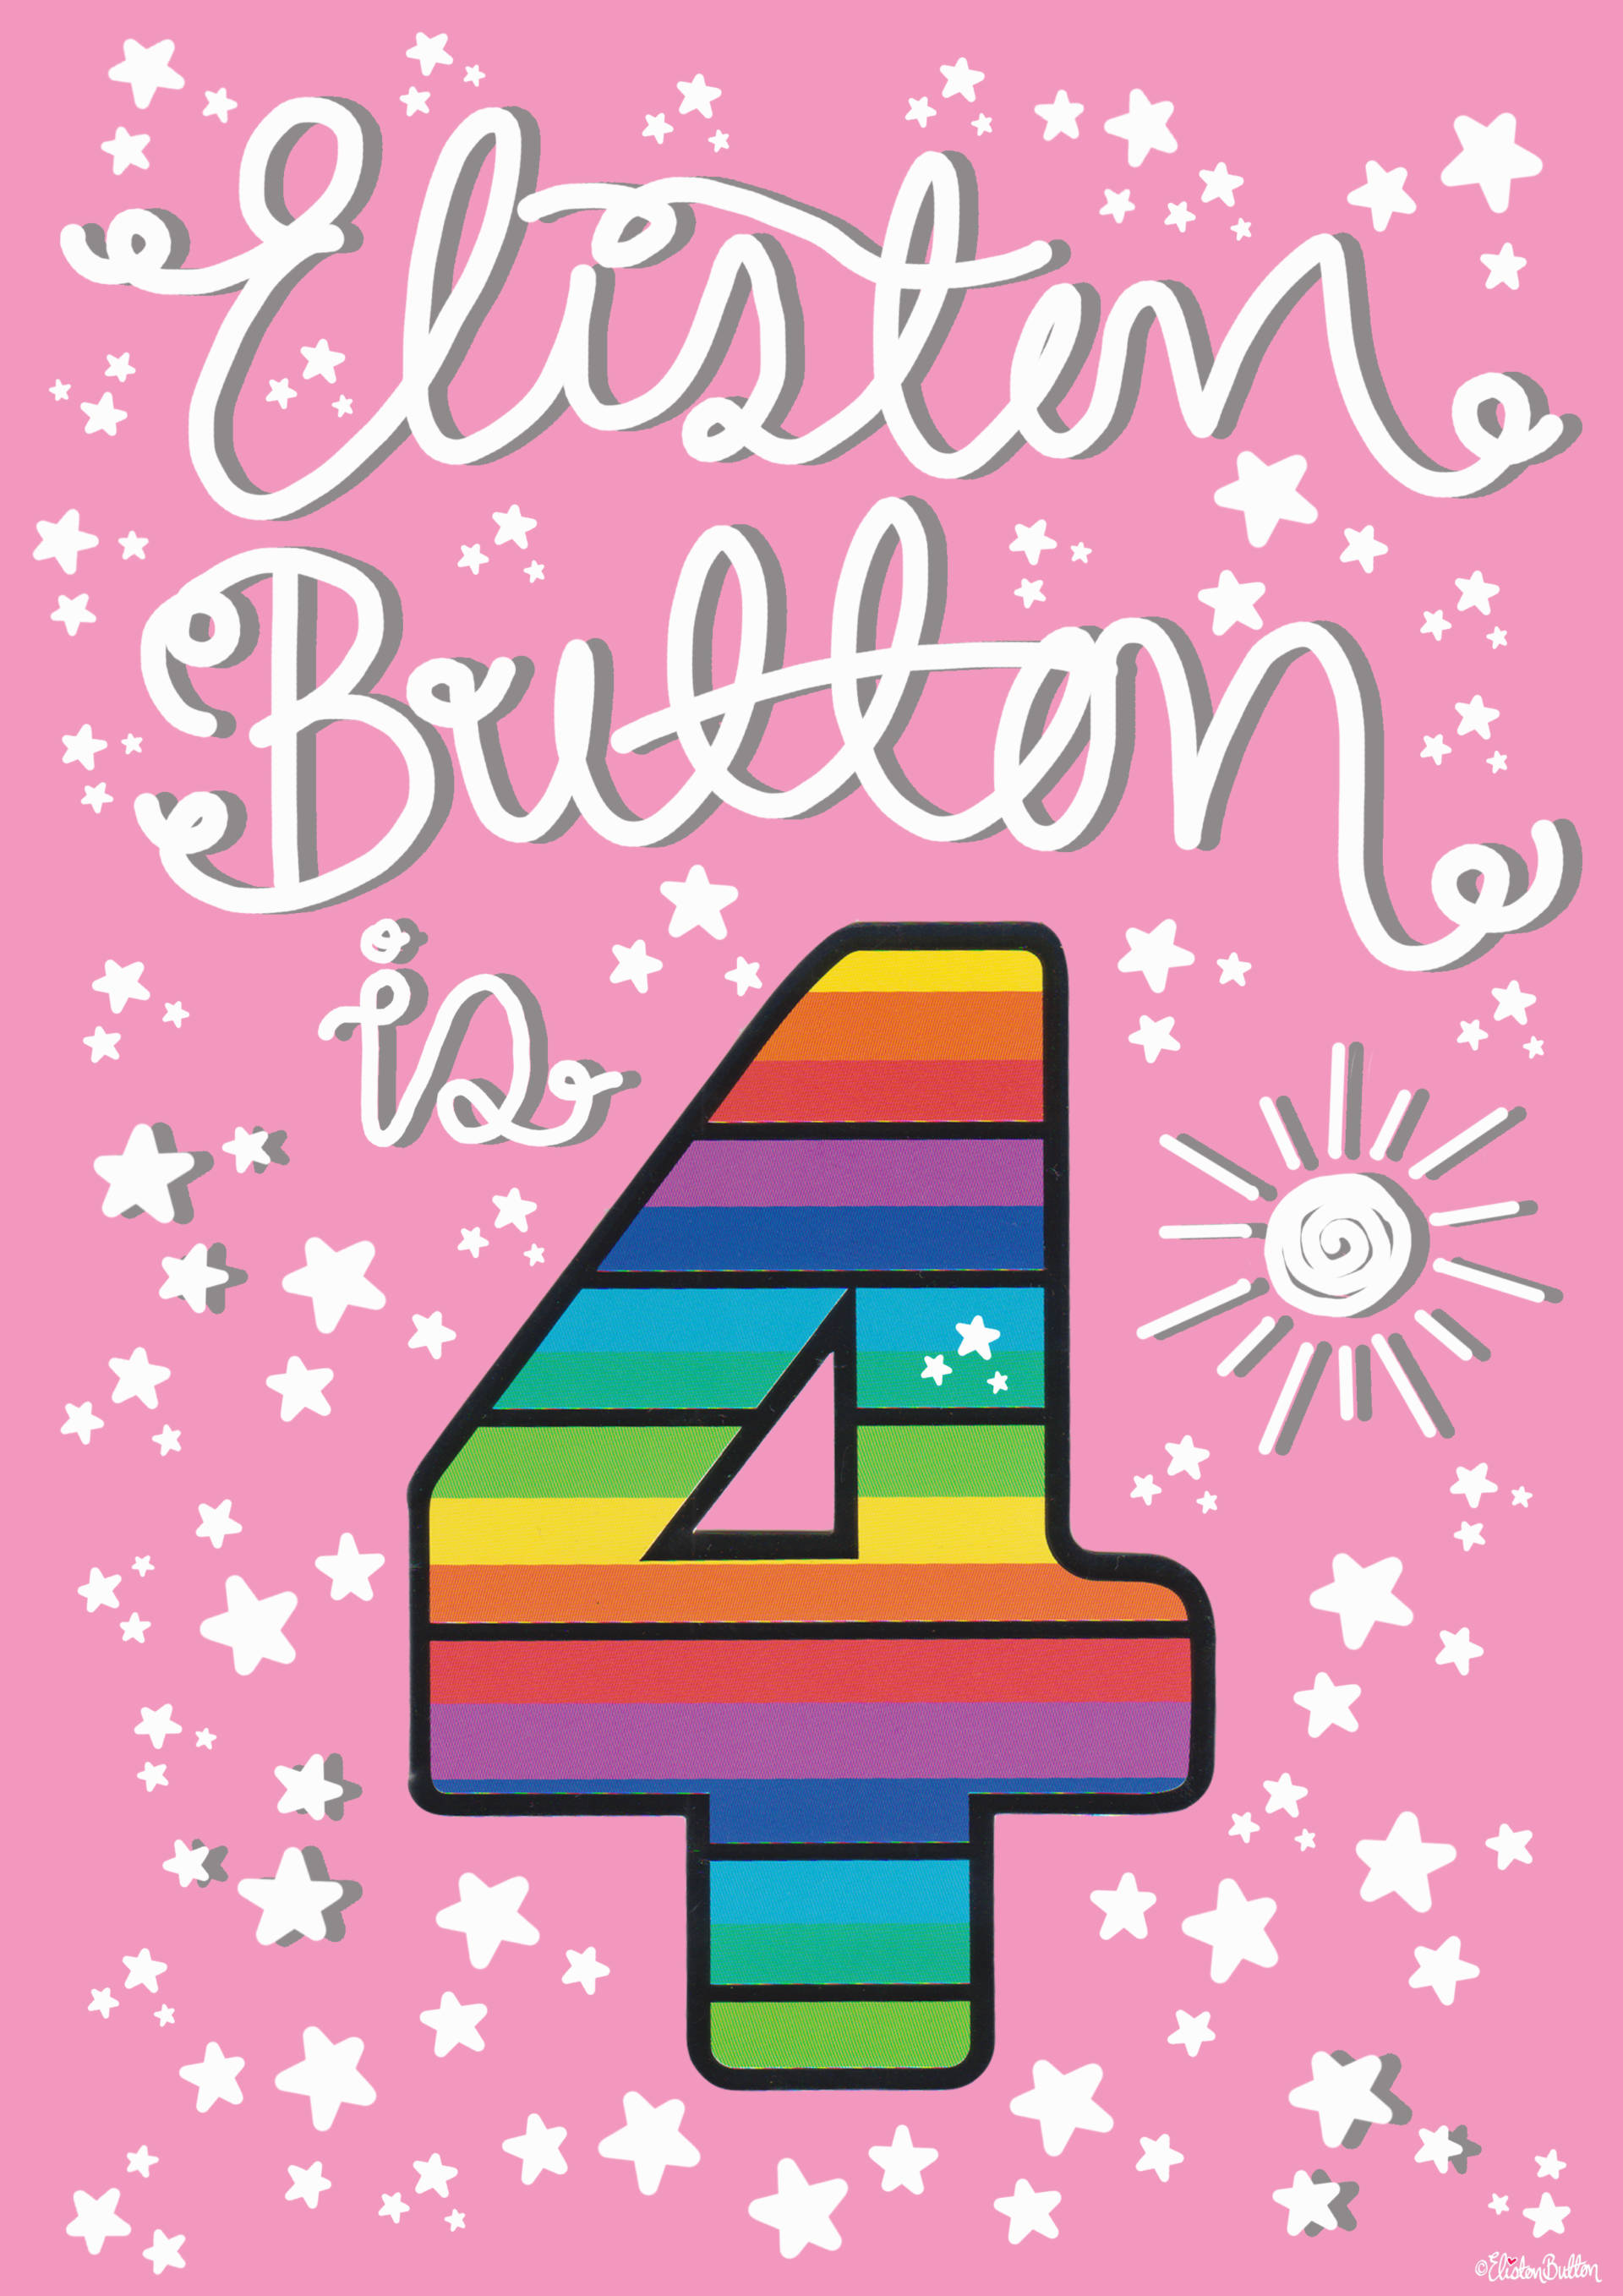 Eliston Button is 4! Rainbow Number 4 - Eliston Button is Four! at www.elistonbutton.com - Eliston Button - That Crafty Kid – Art, Design, Craft & Adventure.